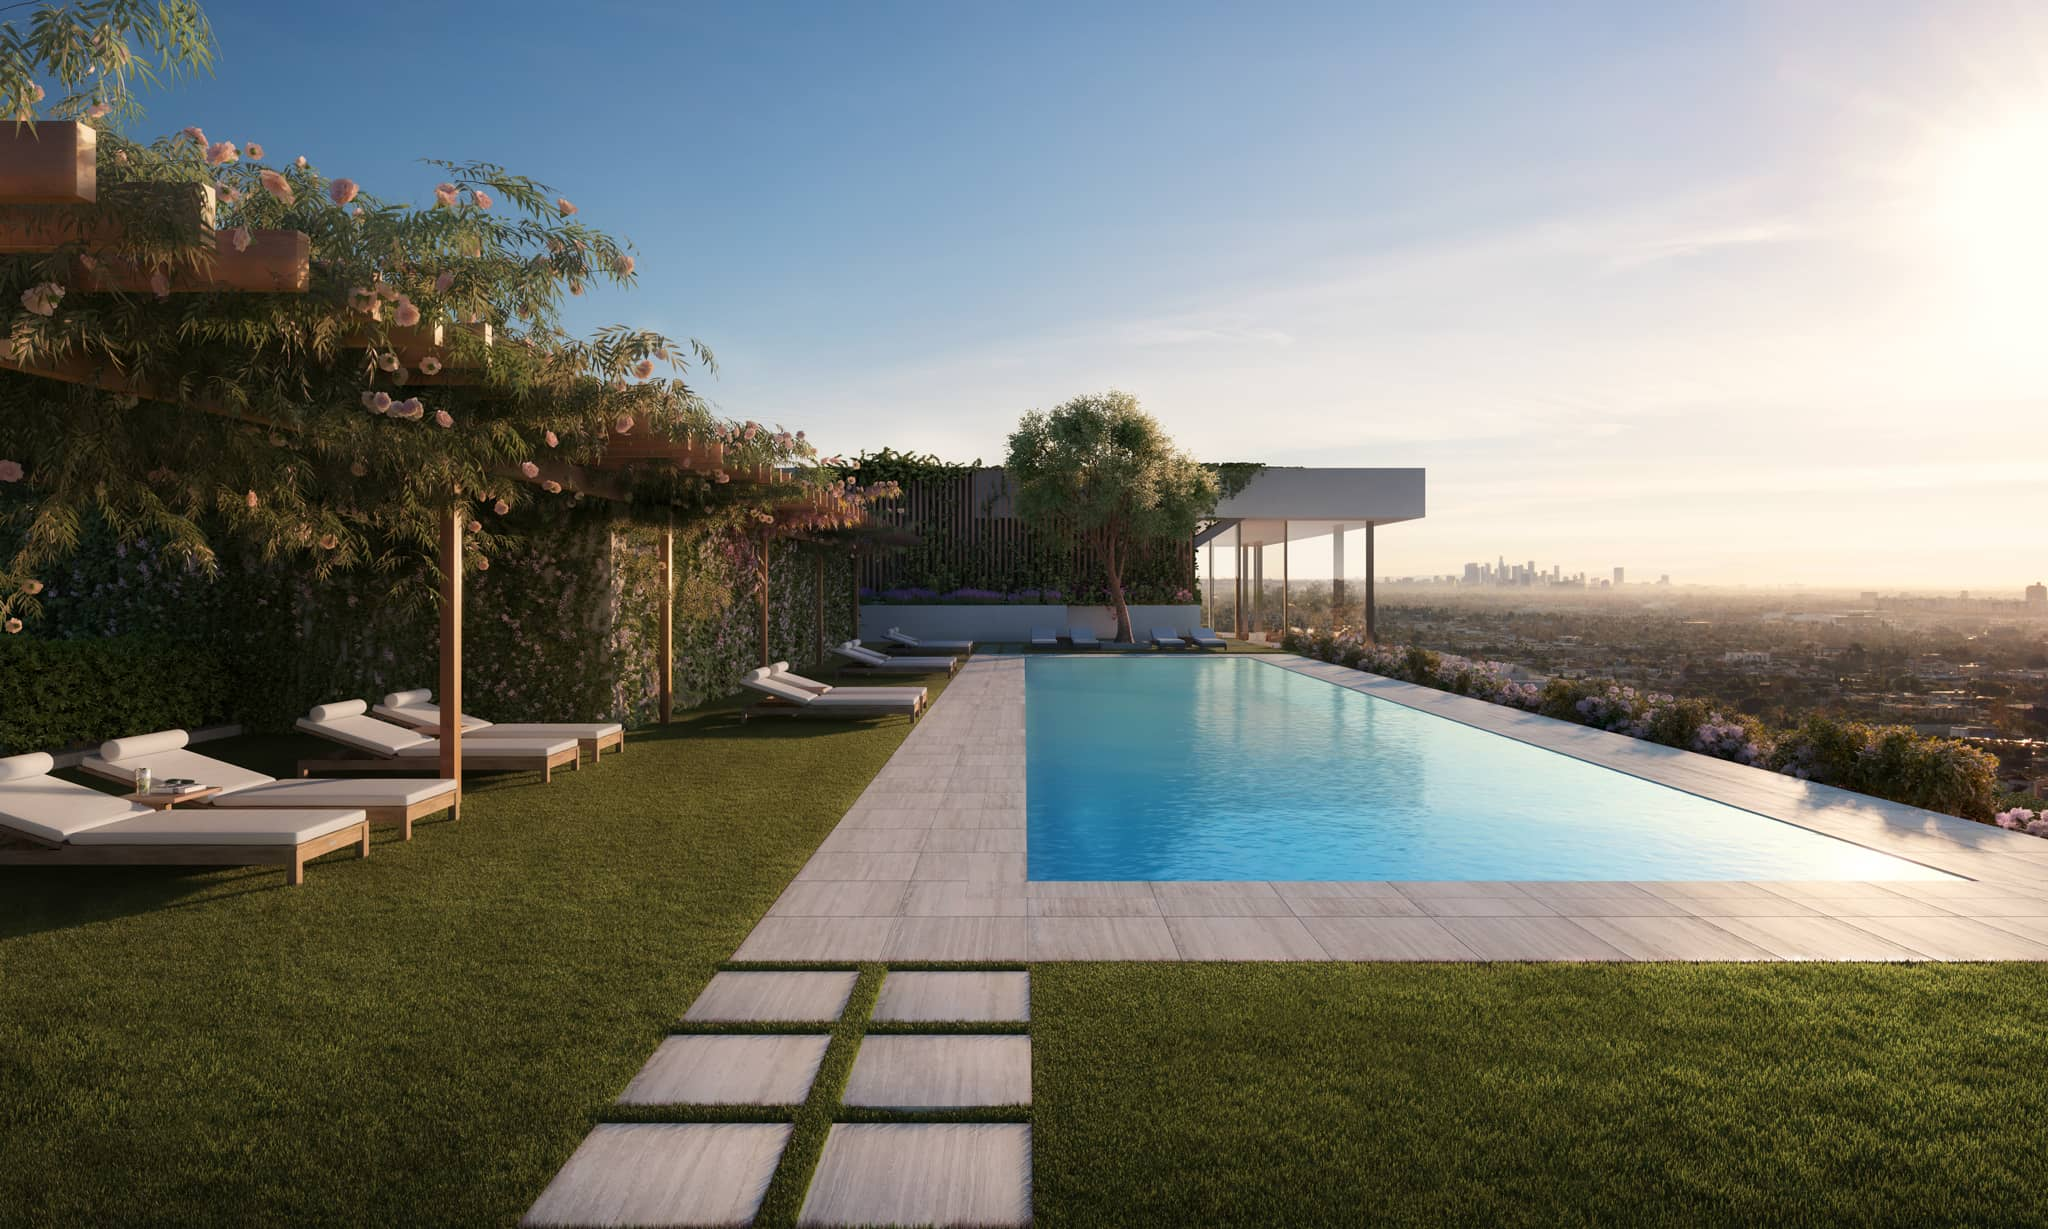 Double pool at West Hollywood residences with a sunset view overlooking Los Angeles. Includes fresh grass and lounge chairs.